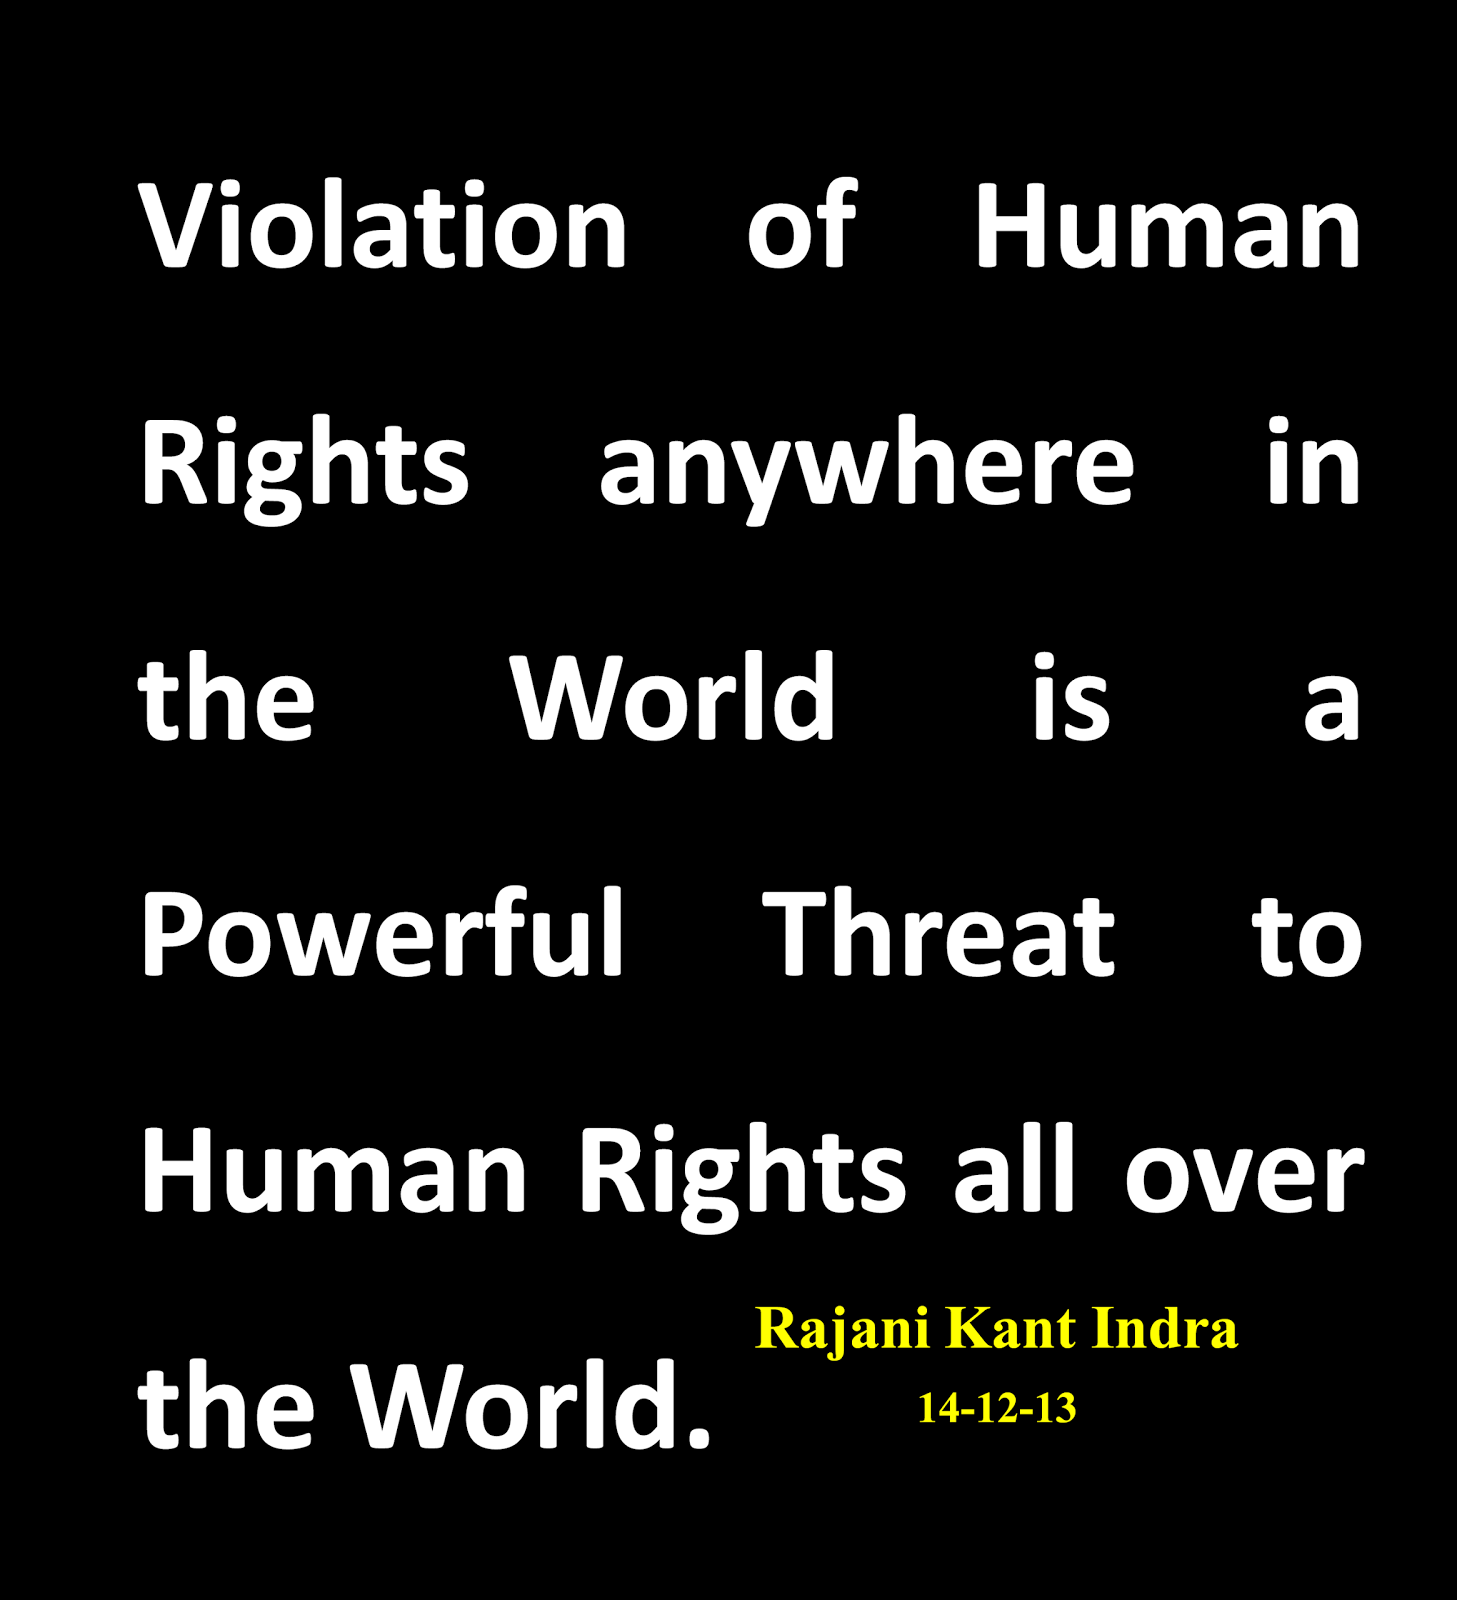 http://quotespictures.com/wp-content/uploads/2014/05/violation-of-human-rights-anywhere-in-the-world-is-a-powerful-threat-to-human-rights-all-over-the-world-rajani-kant-indra.png